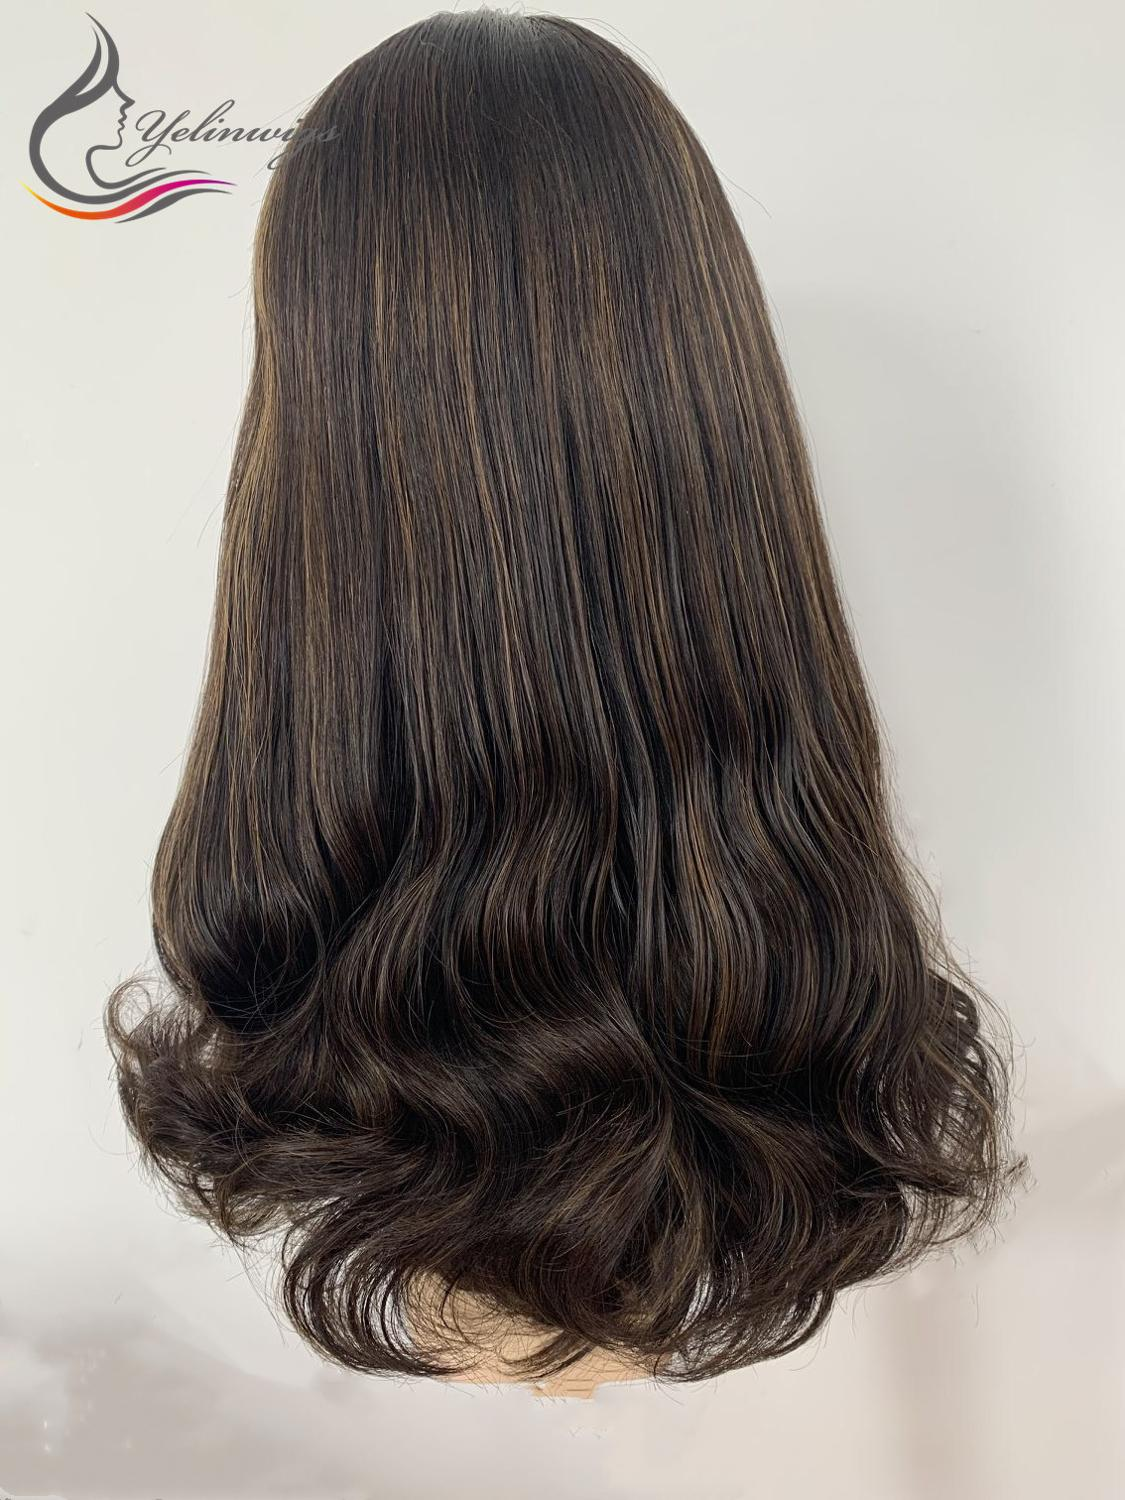 20 Inch 4/6 High Light Color  Virgin European Hair Lace Top Jewish Kosher Wig Natural Wavy Lace Top Wig